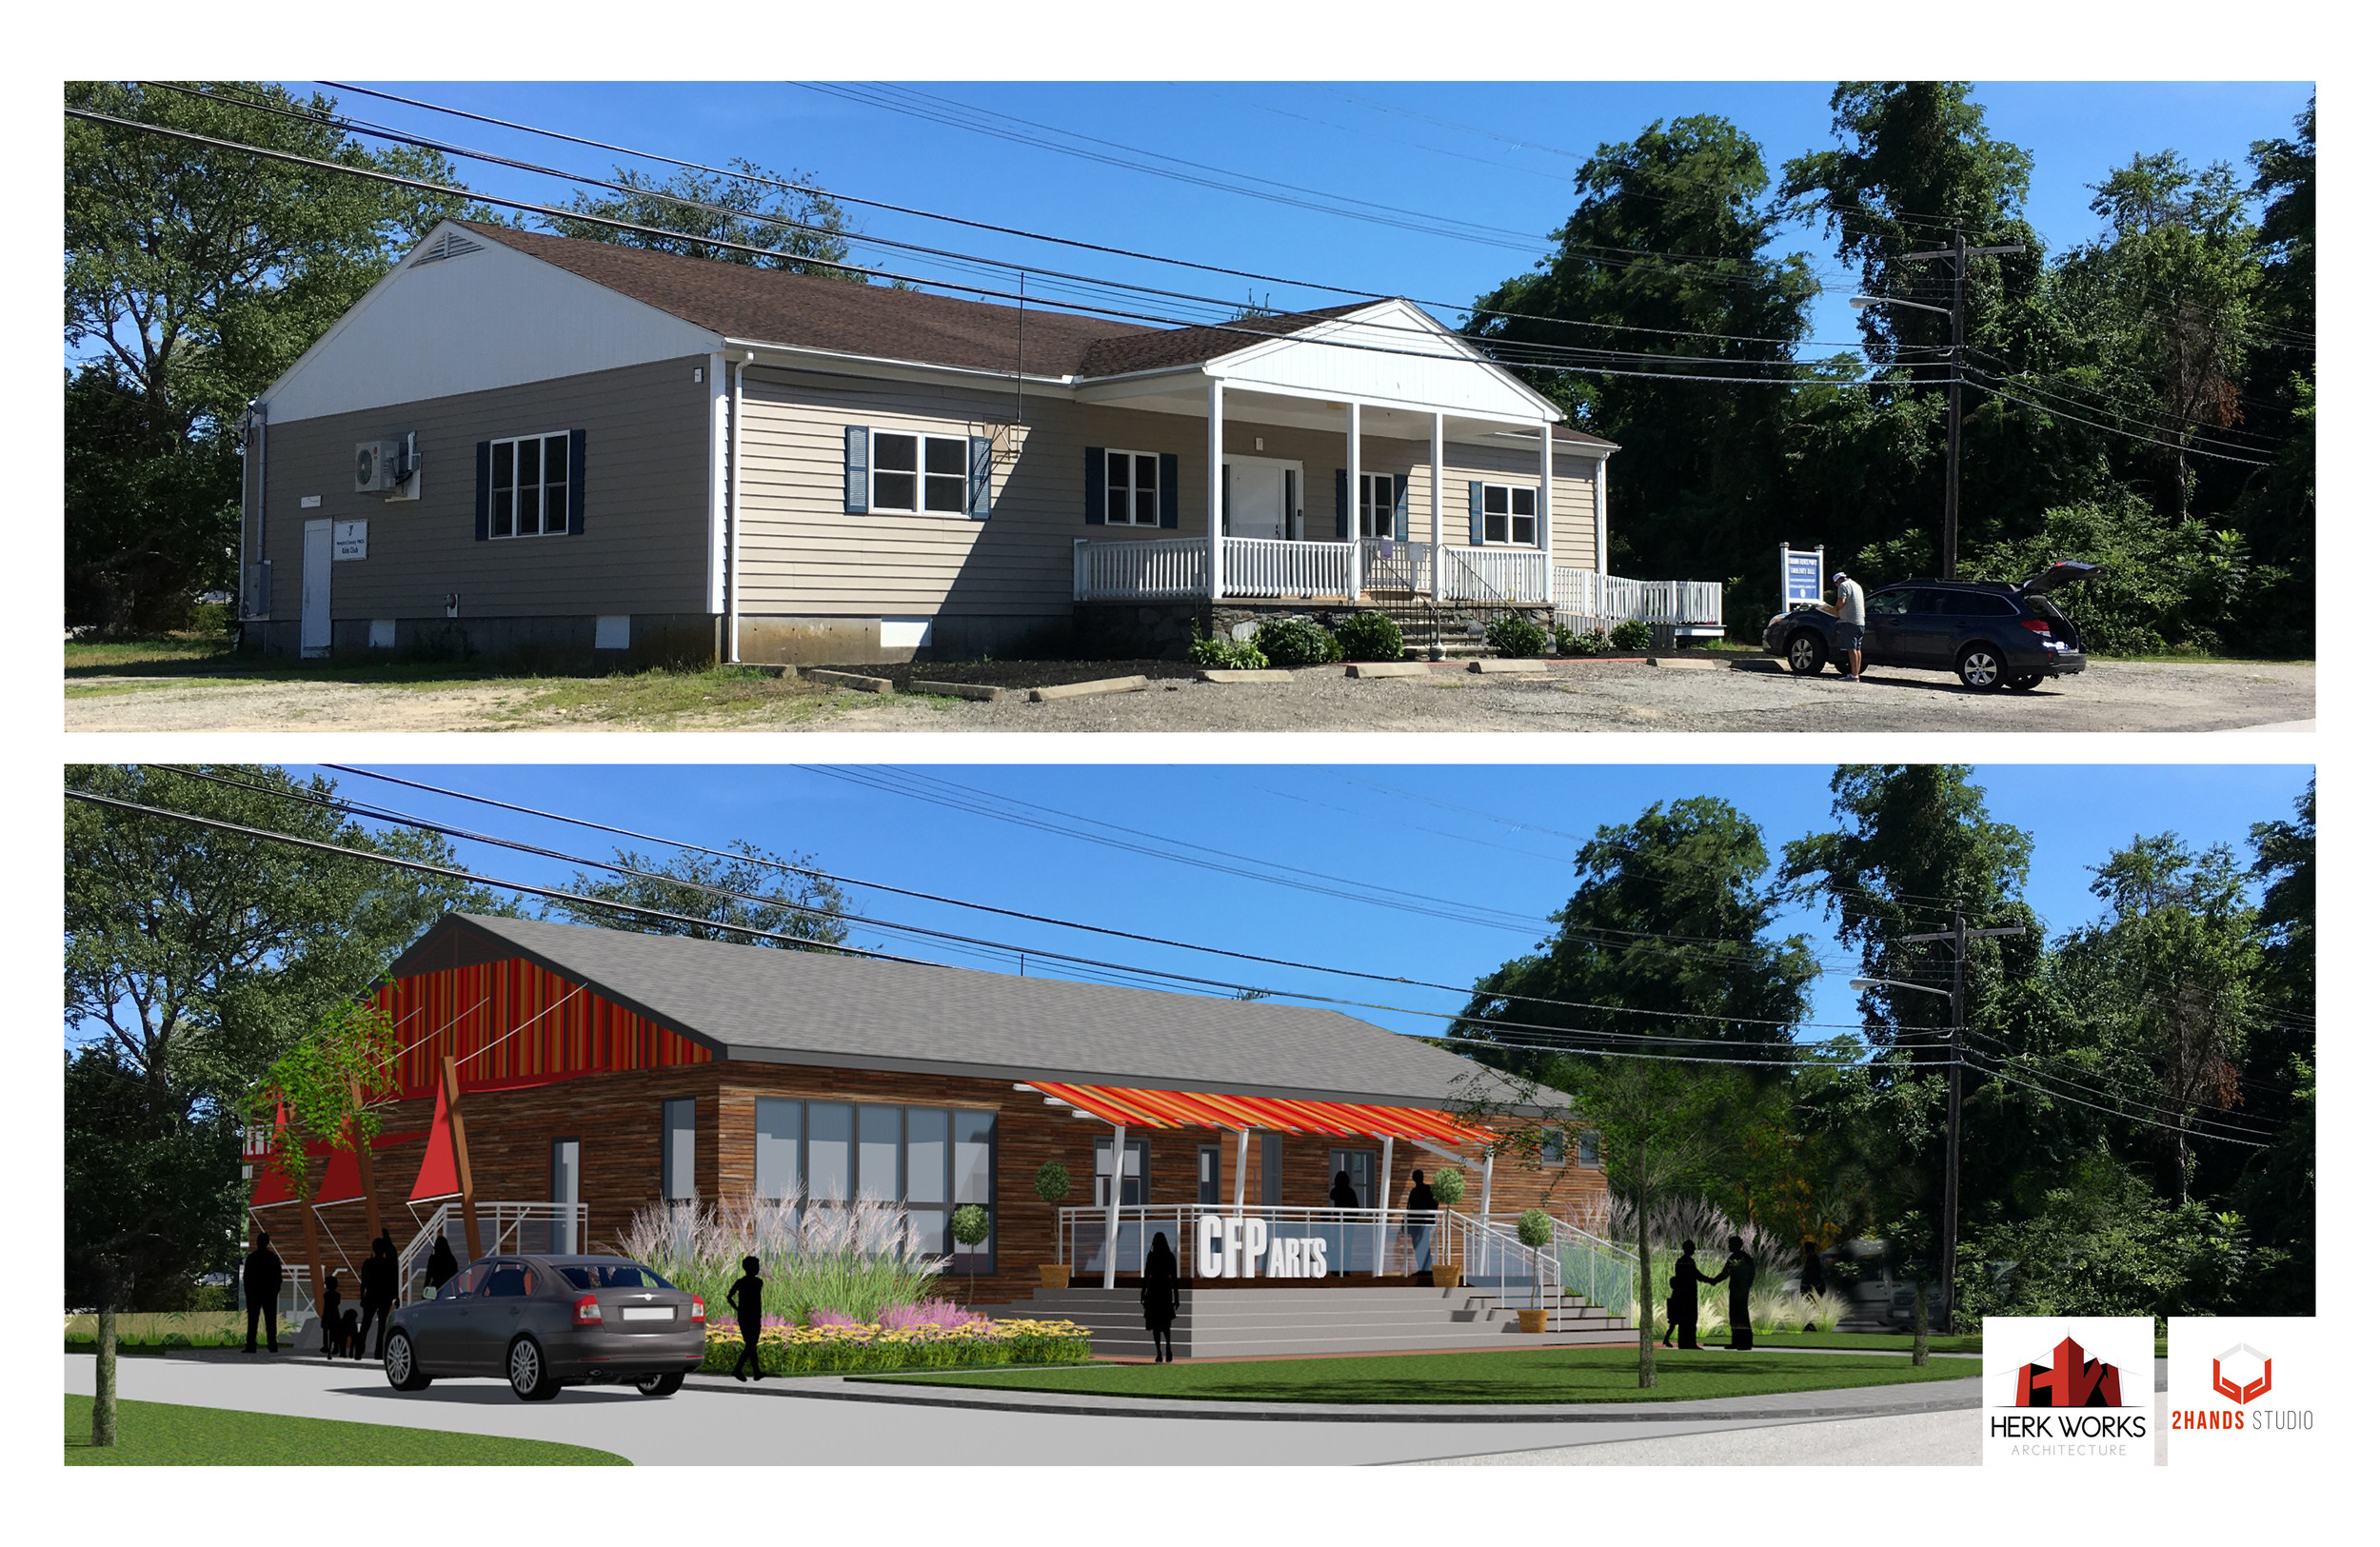 What the Common Fence Point Community Hall looks like today (top) and its possible future appearance (bottom).